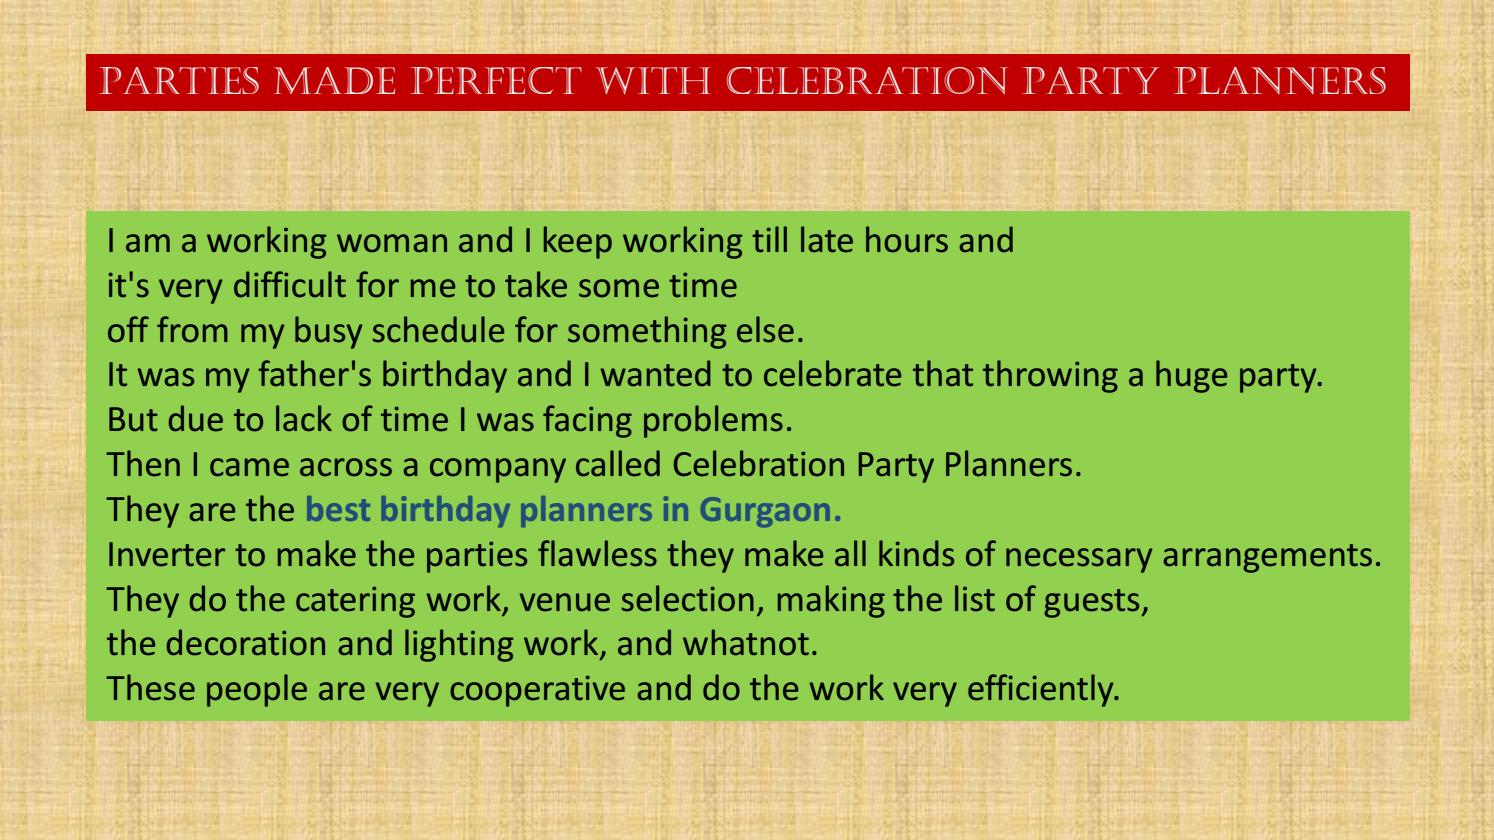 Parties made perfect with Celebration Party Planners